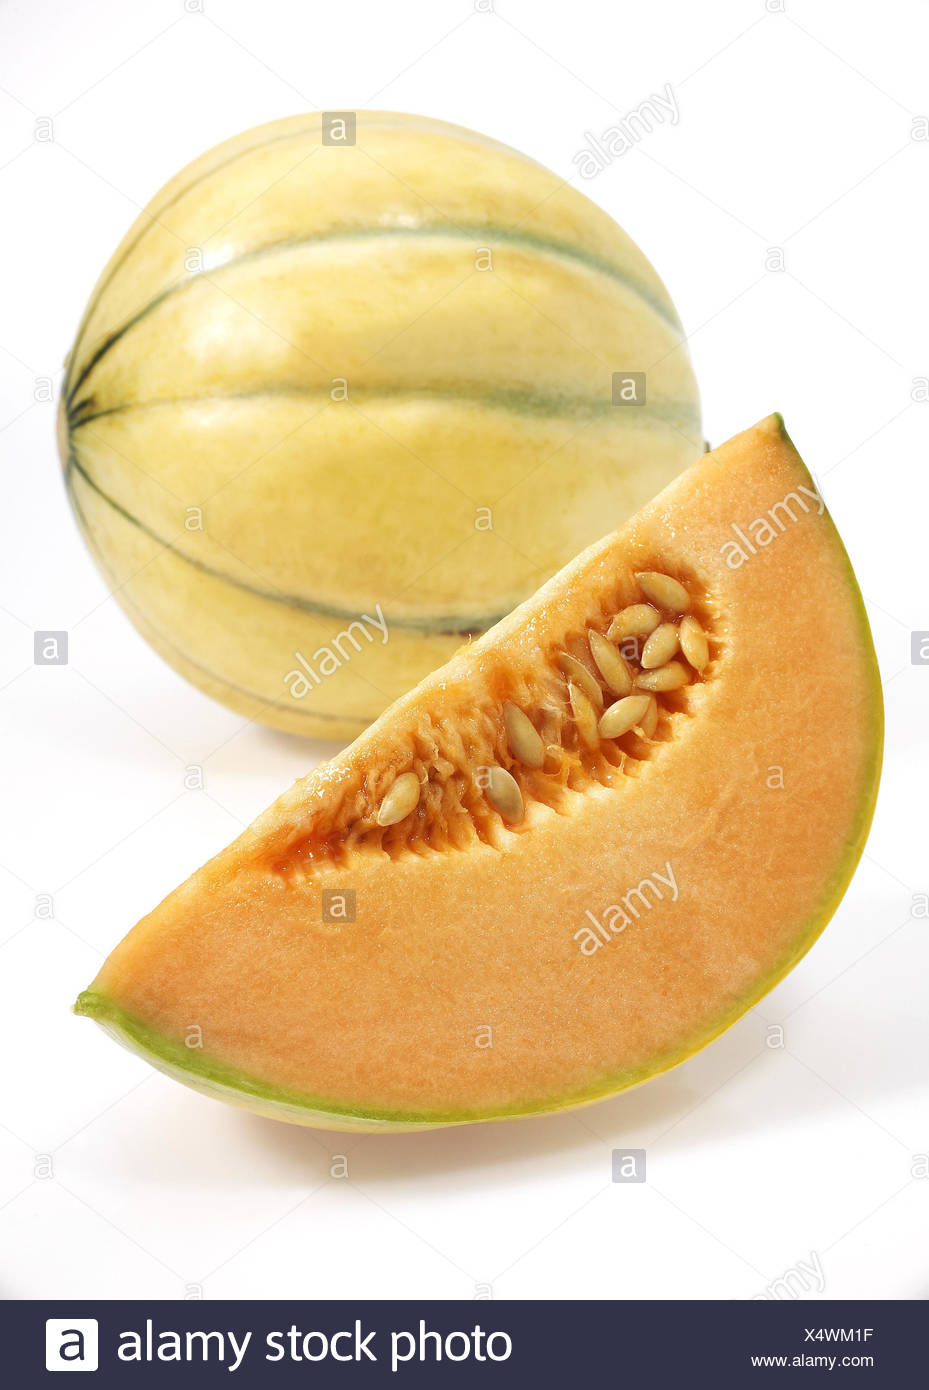 Yellow Canary honeydew melons, also yellow honeydew melon, Amarillo, Tendral Amarillo, sugar melon, Cucumis Melo, white background, - Stock Image